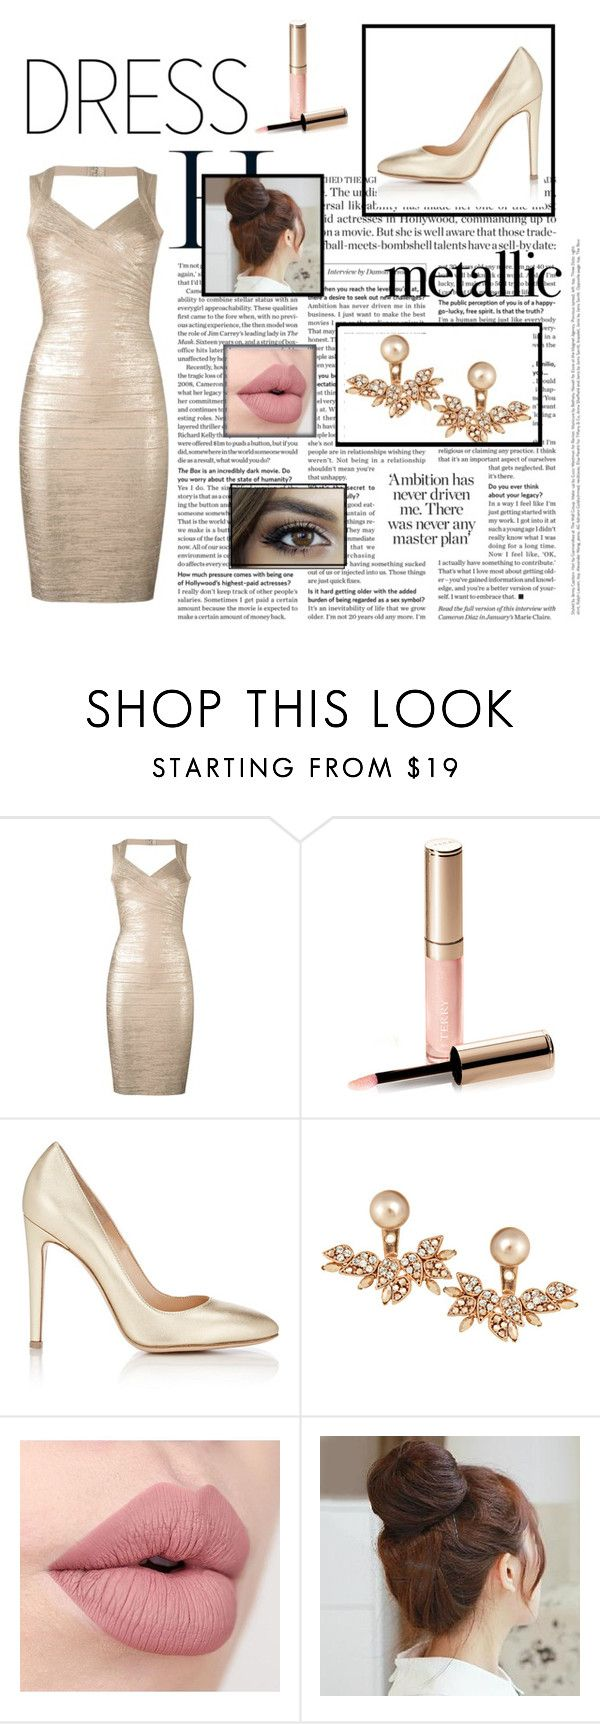 """""""Shine"""" by lissa-12 ❤ liked on Polyvore featuring Hervé Léger, By Terry, Gianvito Rossi, Joanna Laura Constantine and Pin Show"""